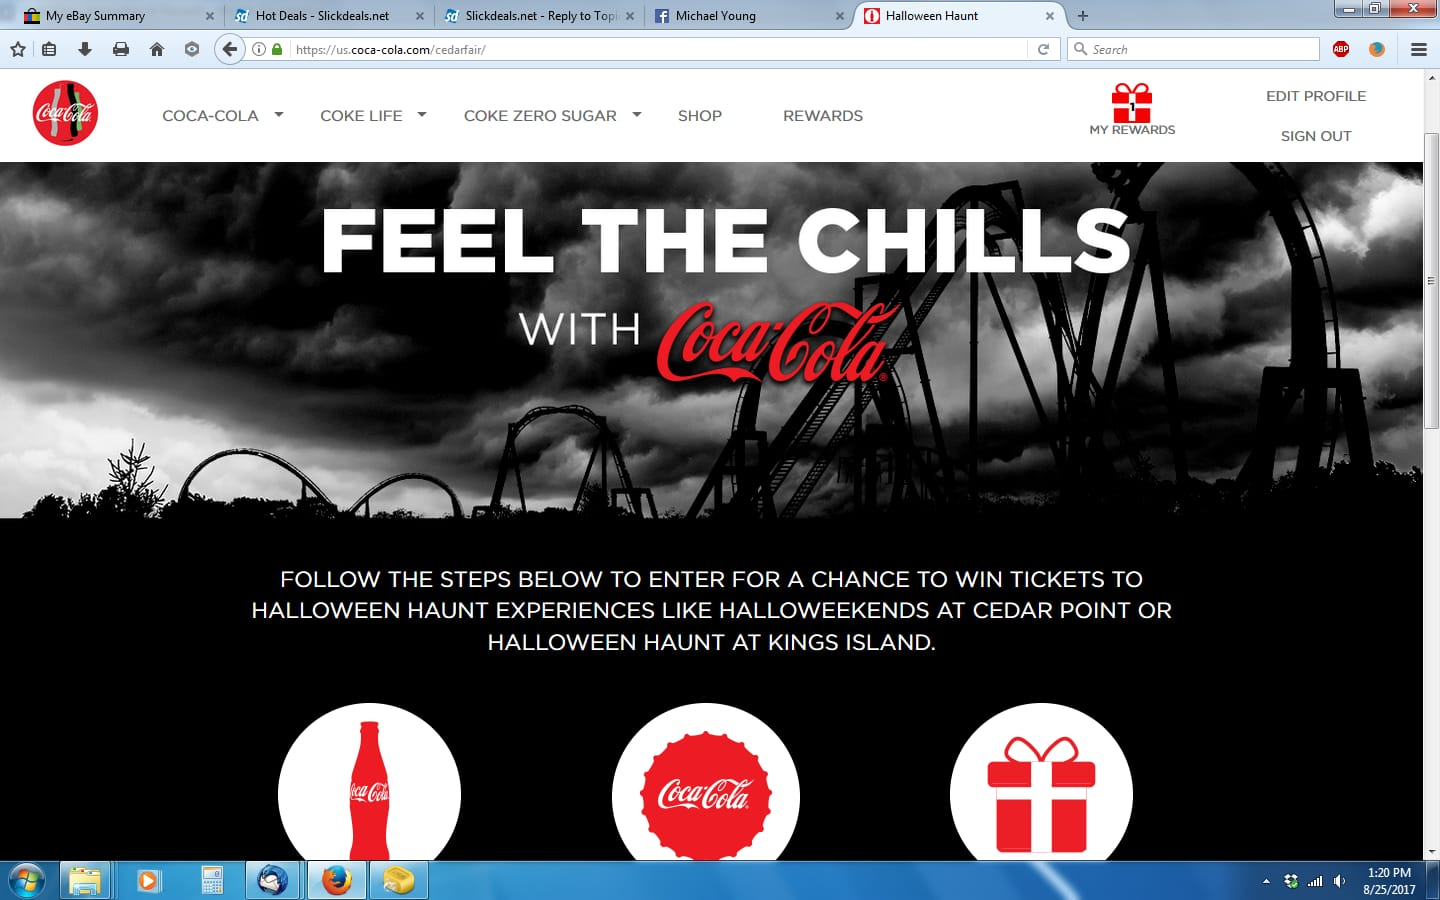 Halloween haunt promo code my coke rewards mcr coca cola com offers discussion thread